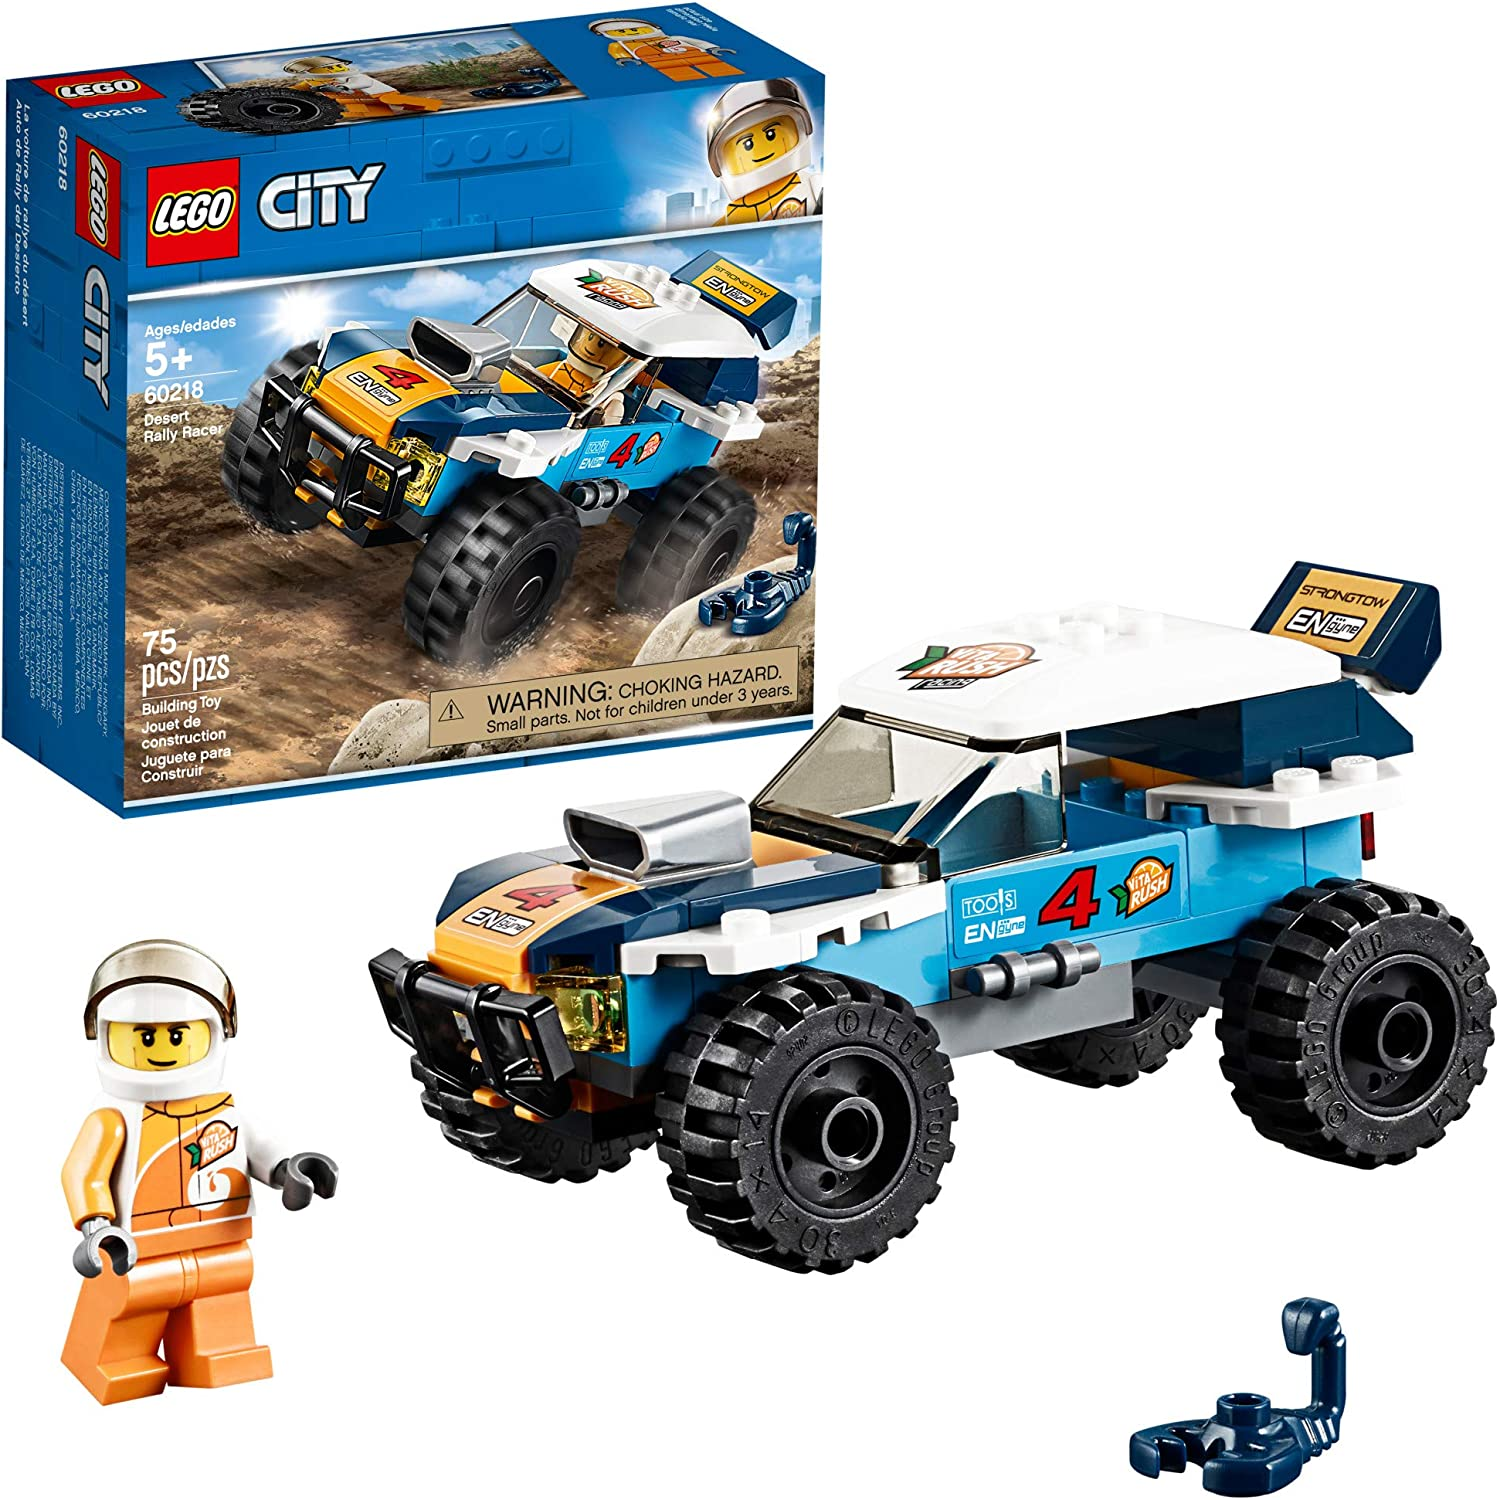 LEGO City Great Vehicles Desert Rally Racer 60218 Building Kit (75 Pieces)